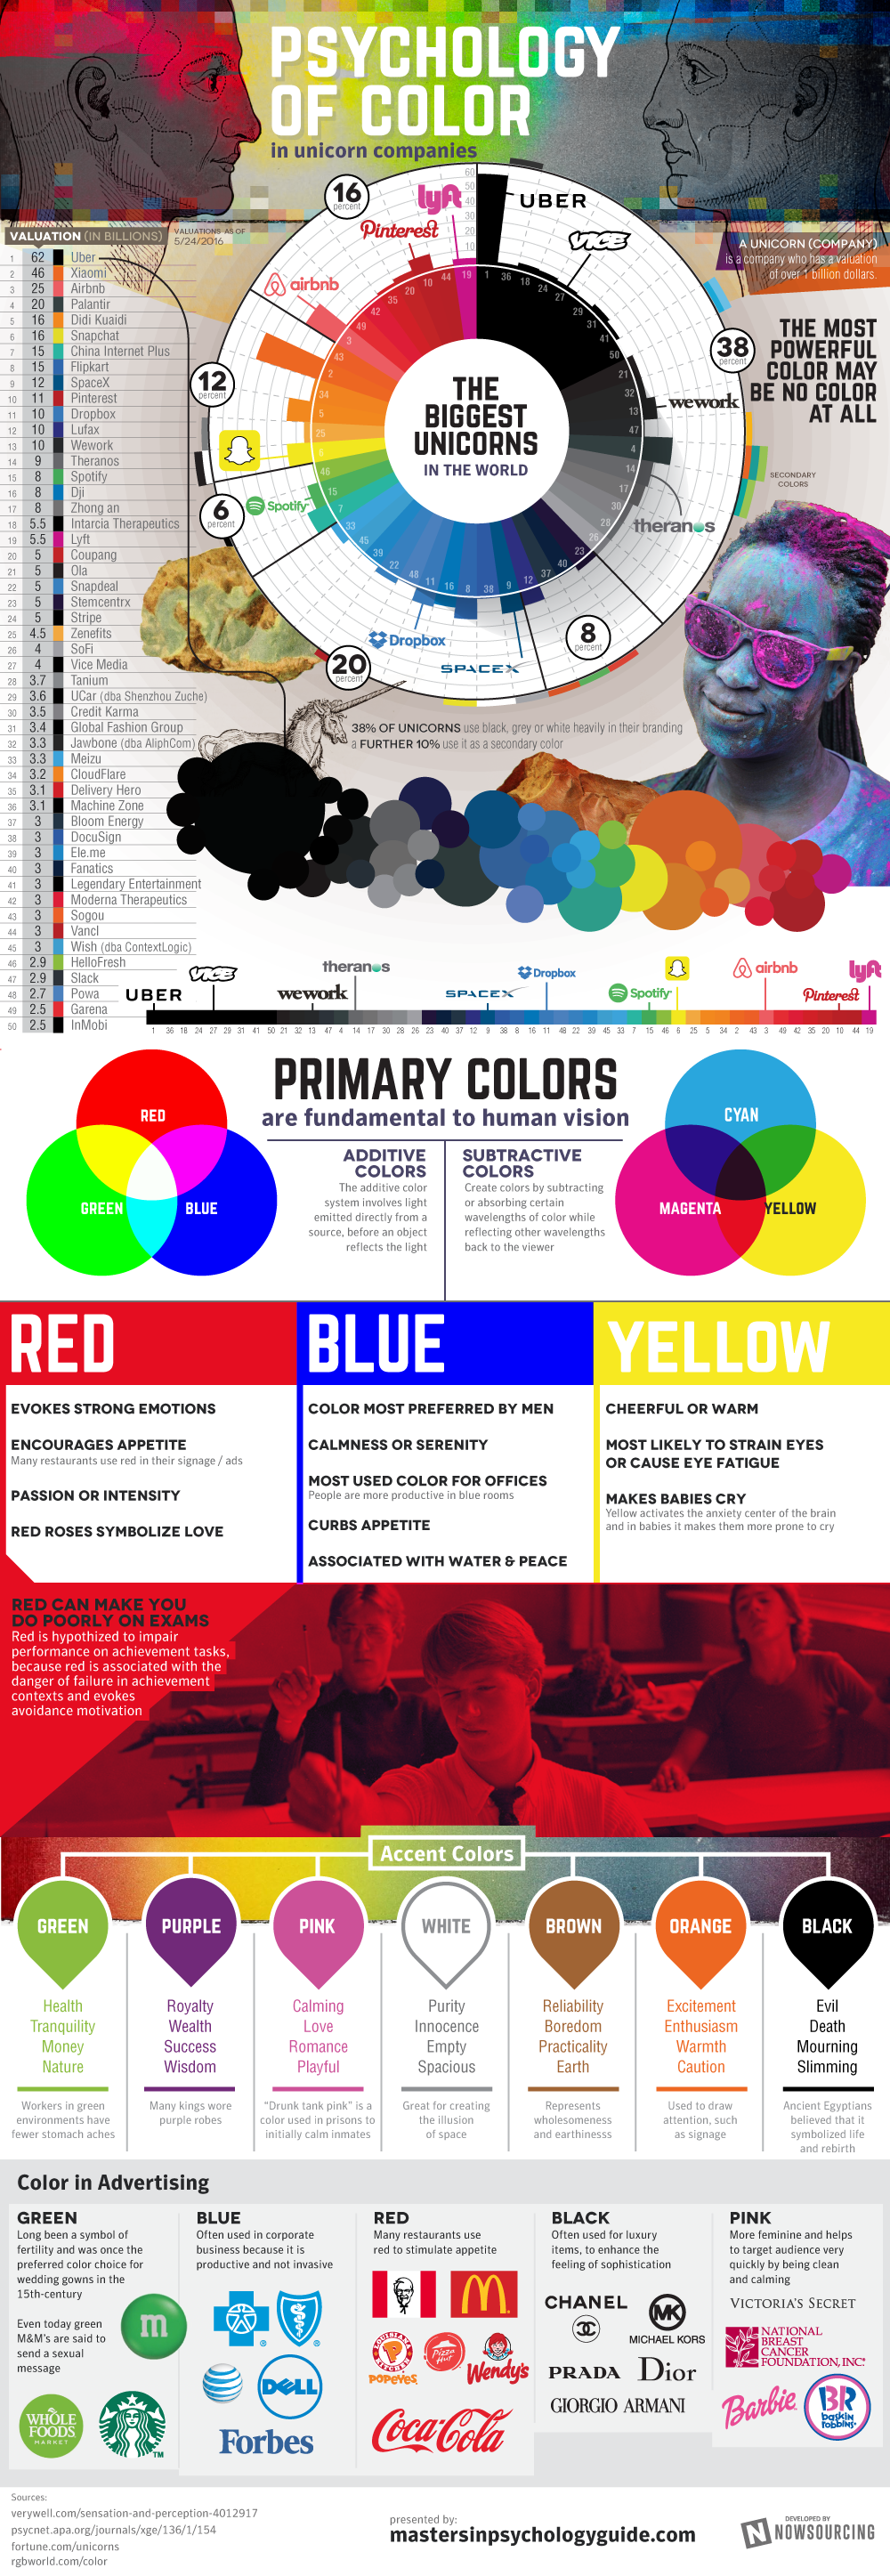 The Psychology Of Color In Business [INFOGRAPHIC]